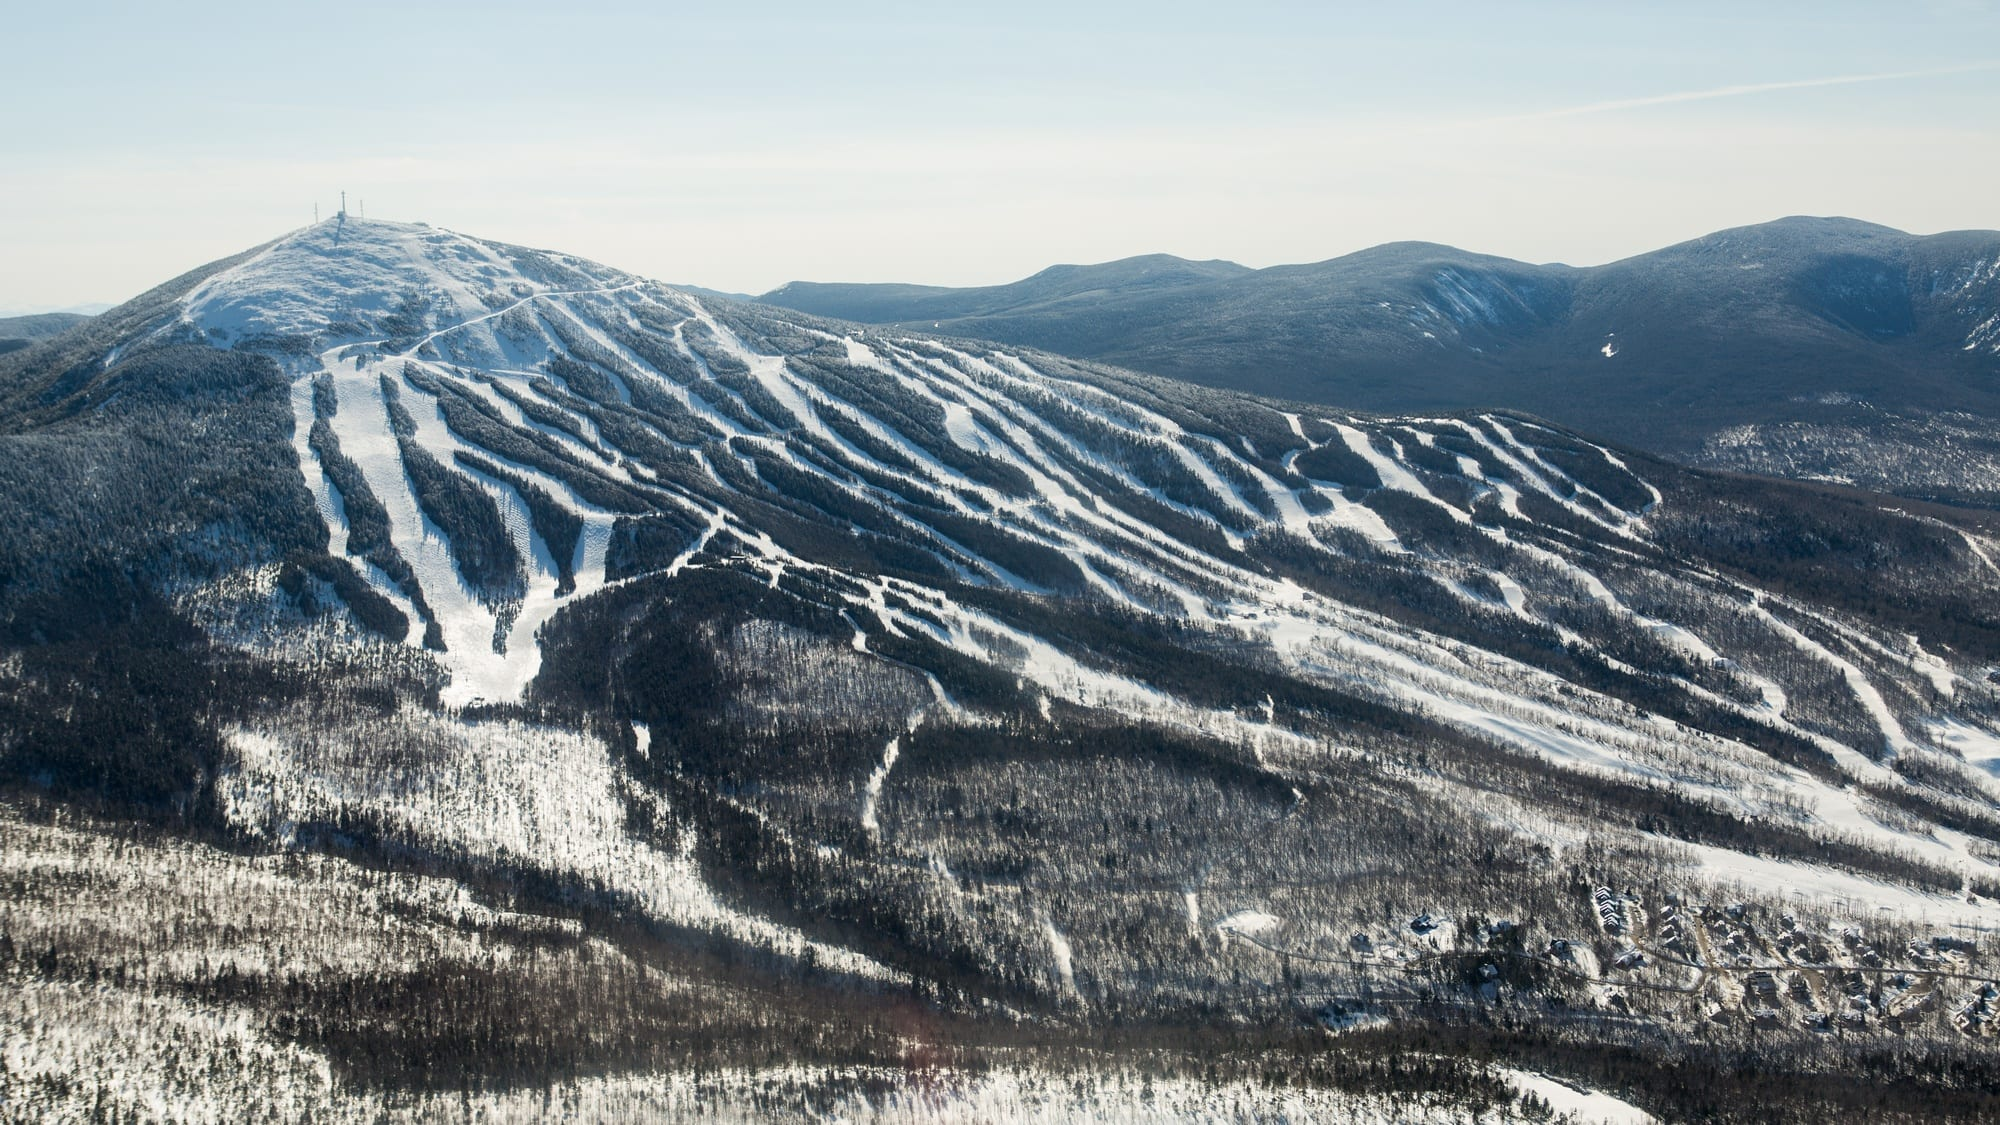 Sugarloaf Mountain / Looking for some great East Coast ski slopes to learn to ski on? Read our list of the best New England ski resorts that are perfect for beginners.